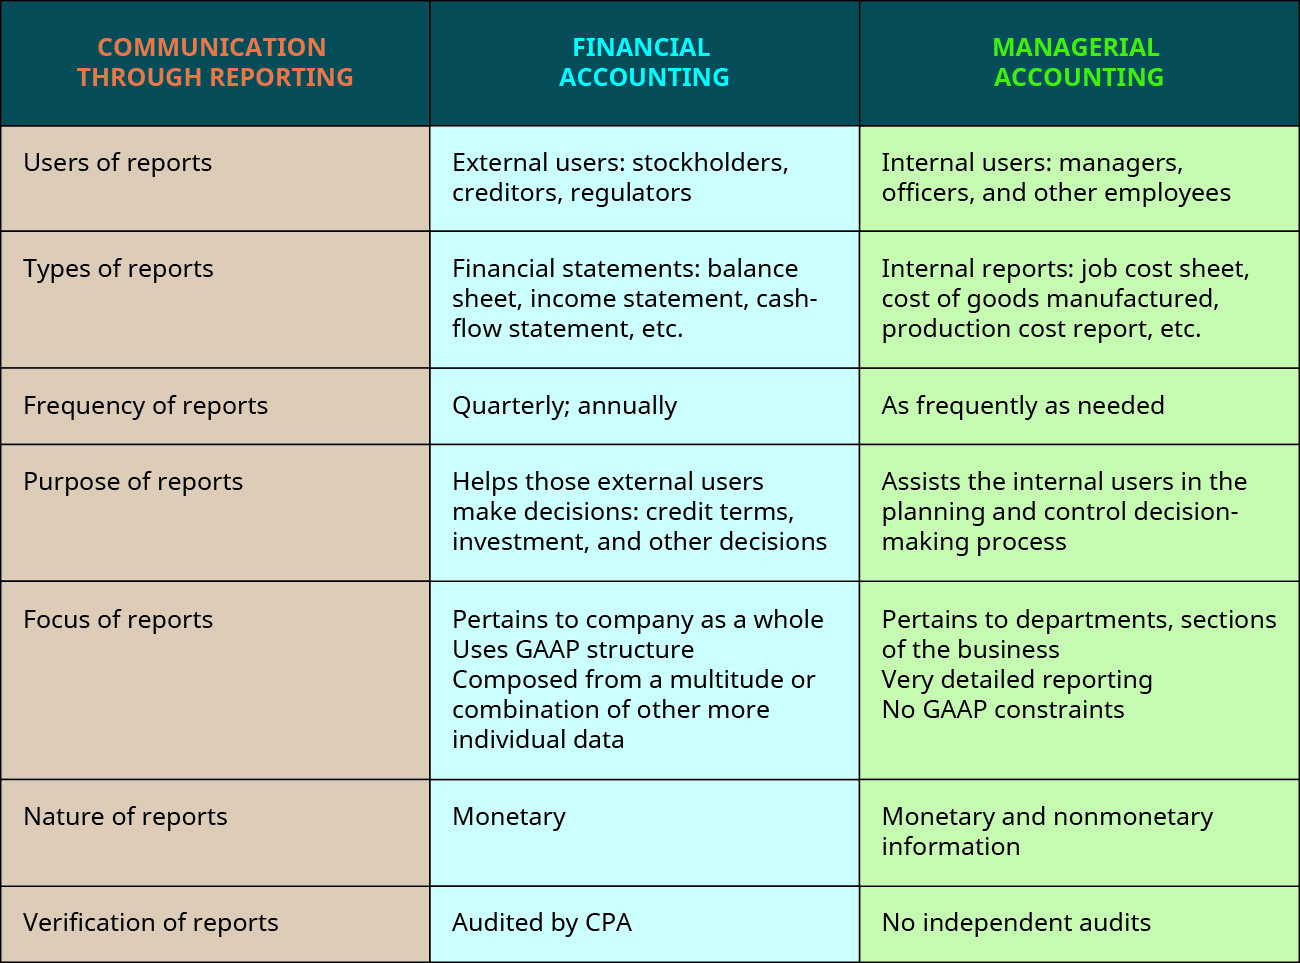 Distinguish Between Financial And Managerial Accounting